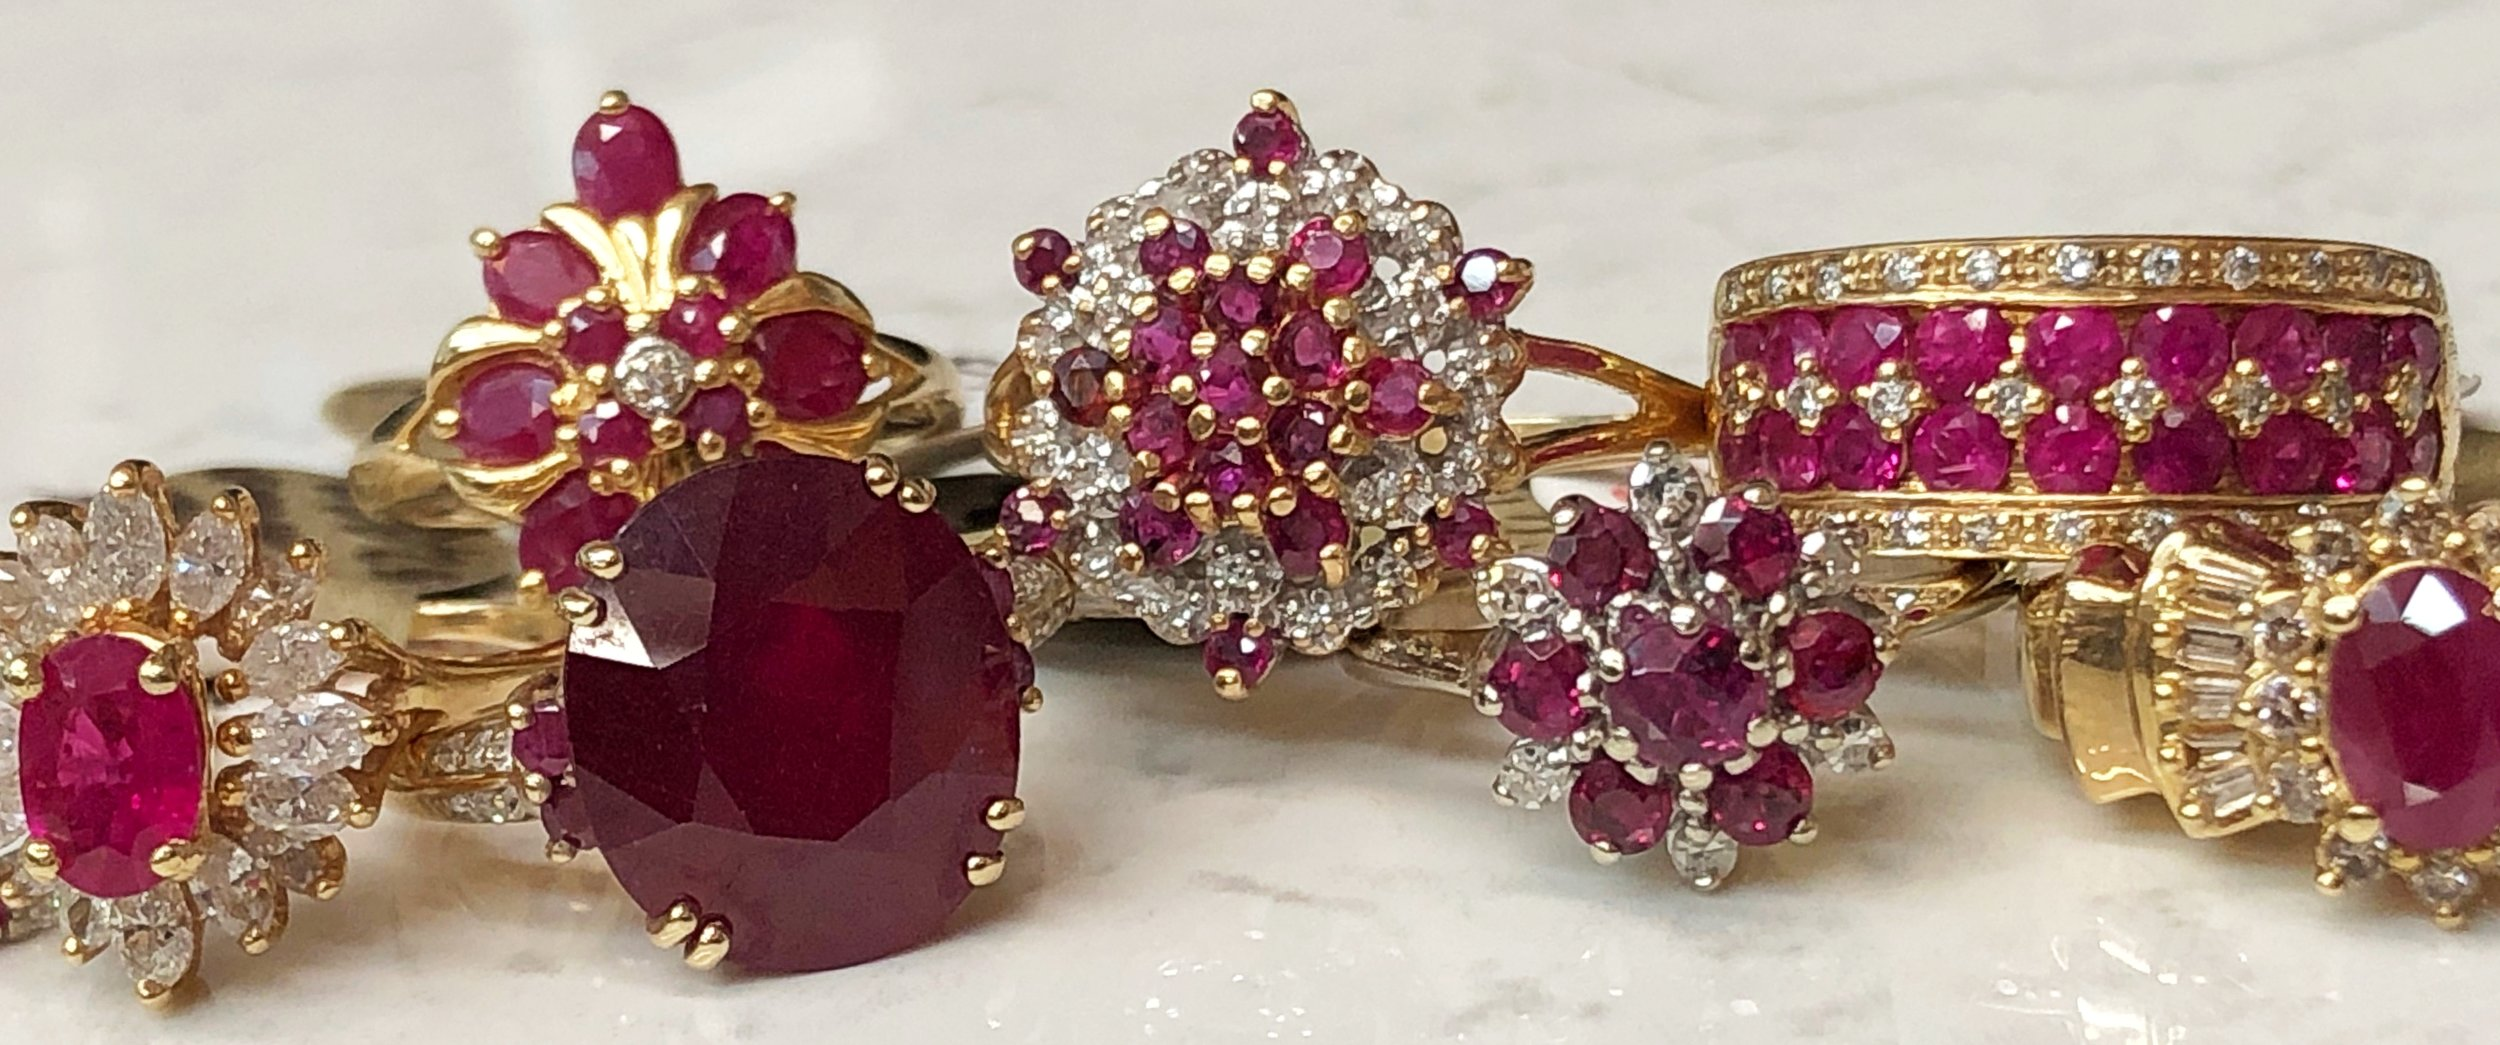 A sampling of just a few of our Ruby rings